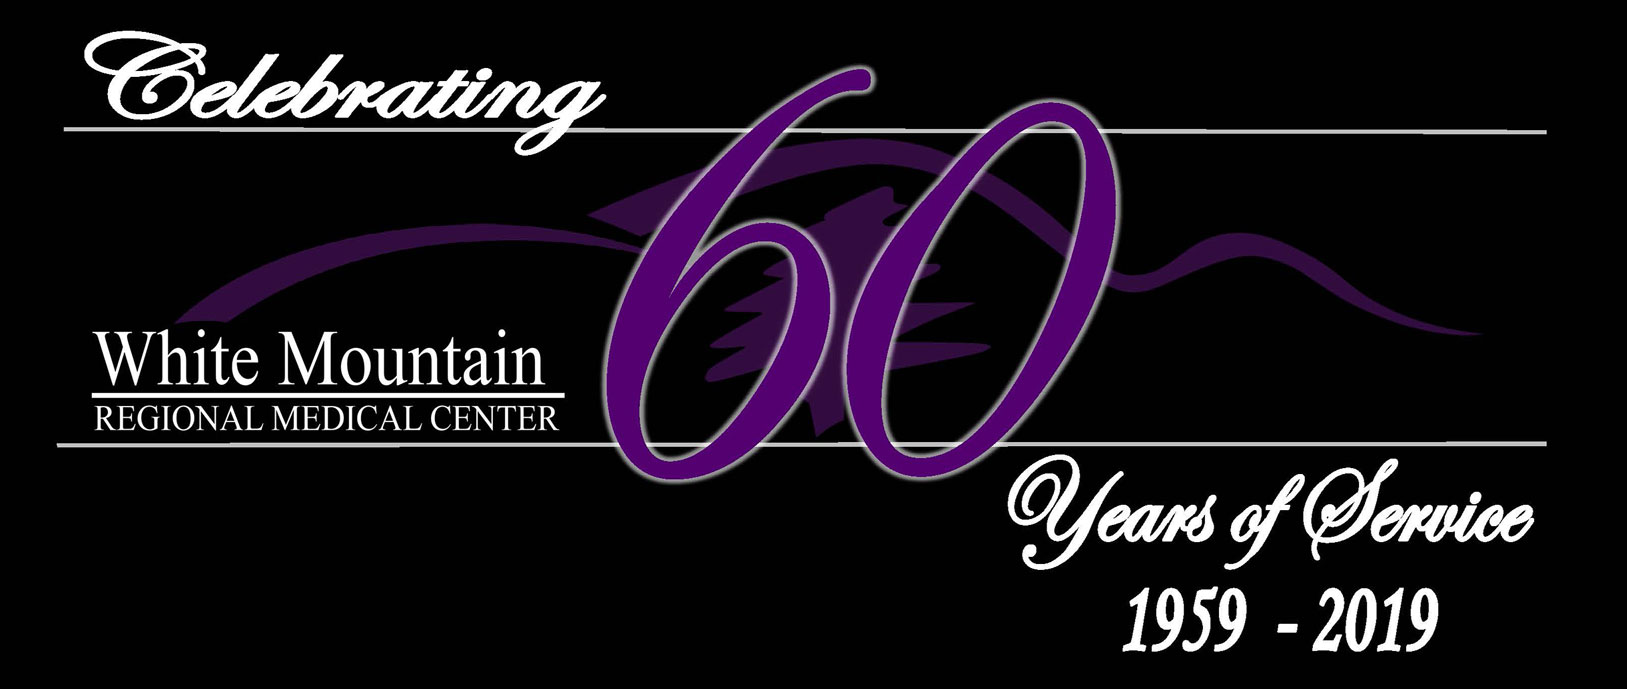 Celebrating 60 years of Service